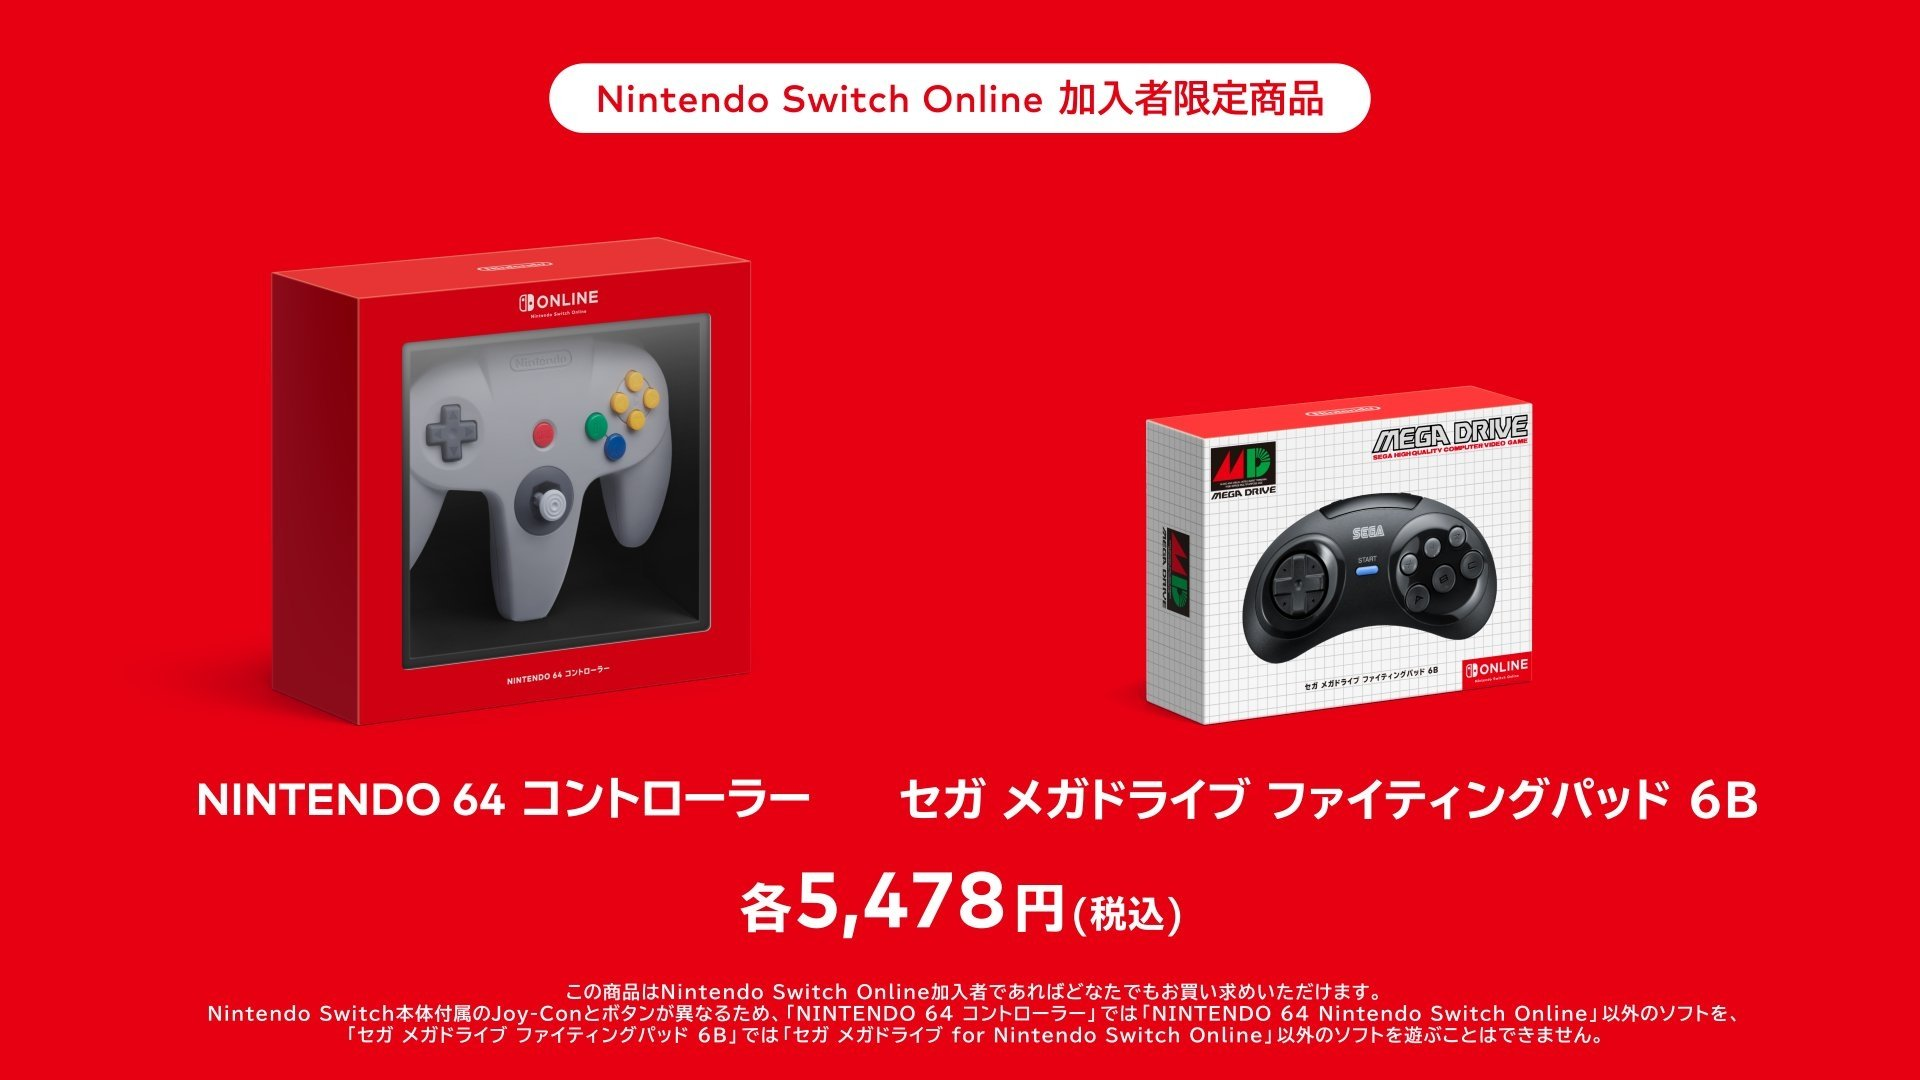 Nintendo 64 (L) and Sega Mega Drive's six-button layout controller exclusive to Japan are seen in this promotional poster released by Nintendo (Credit: Nintendo)